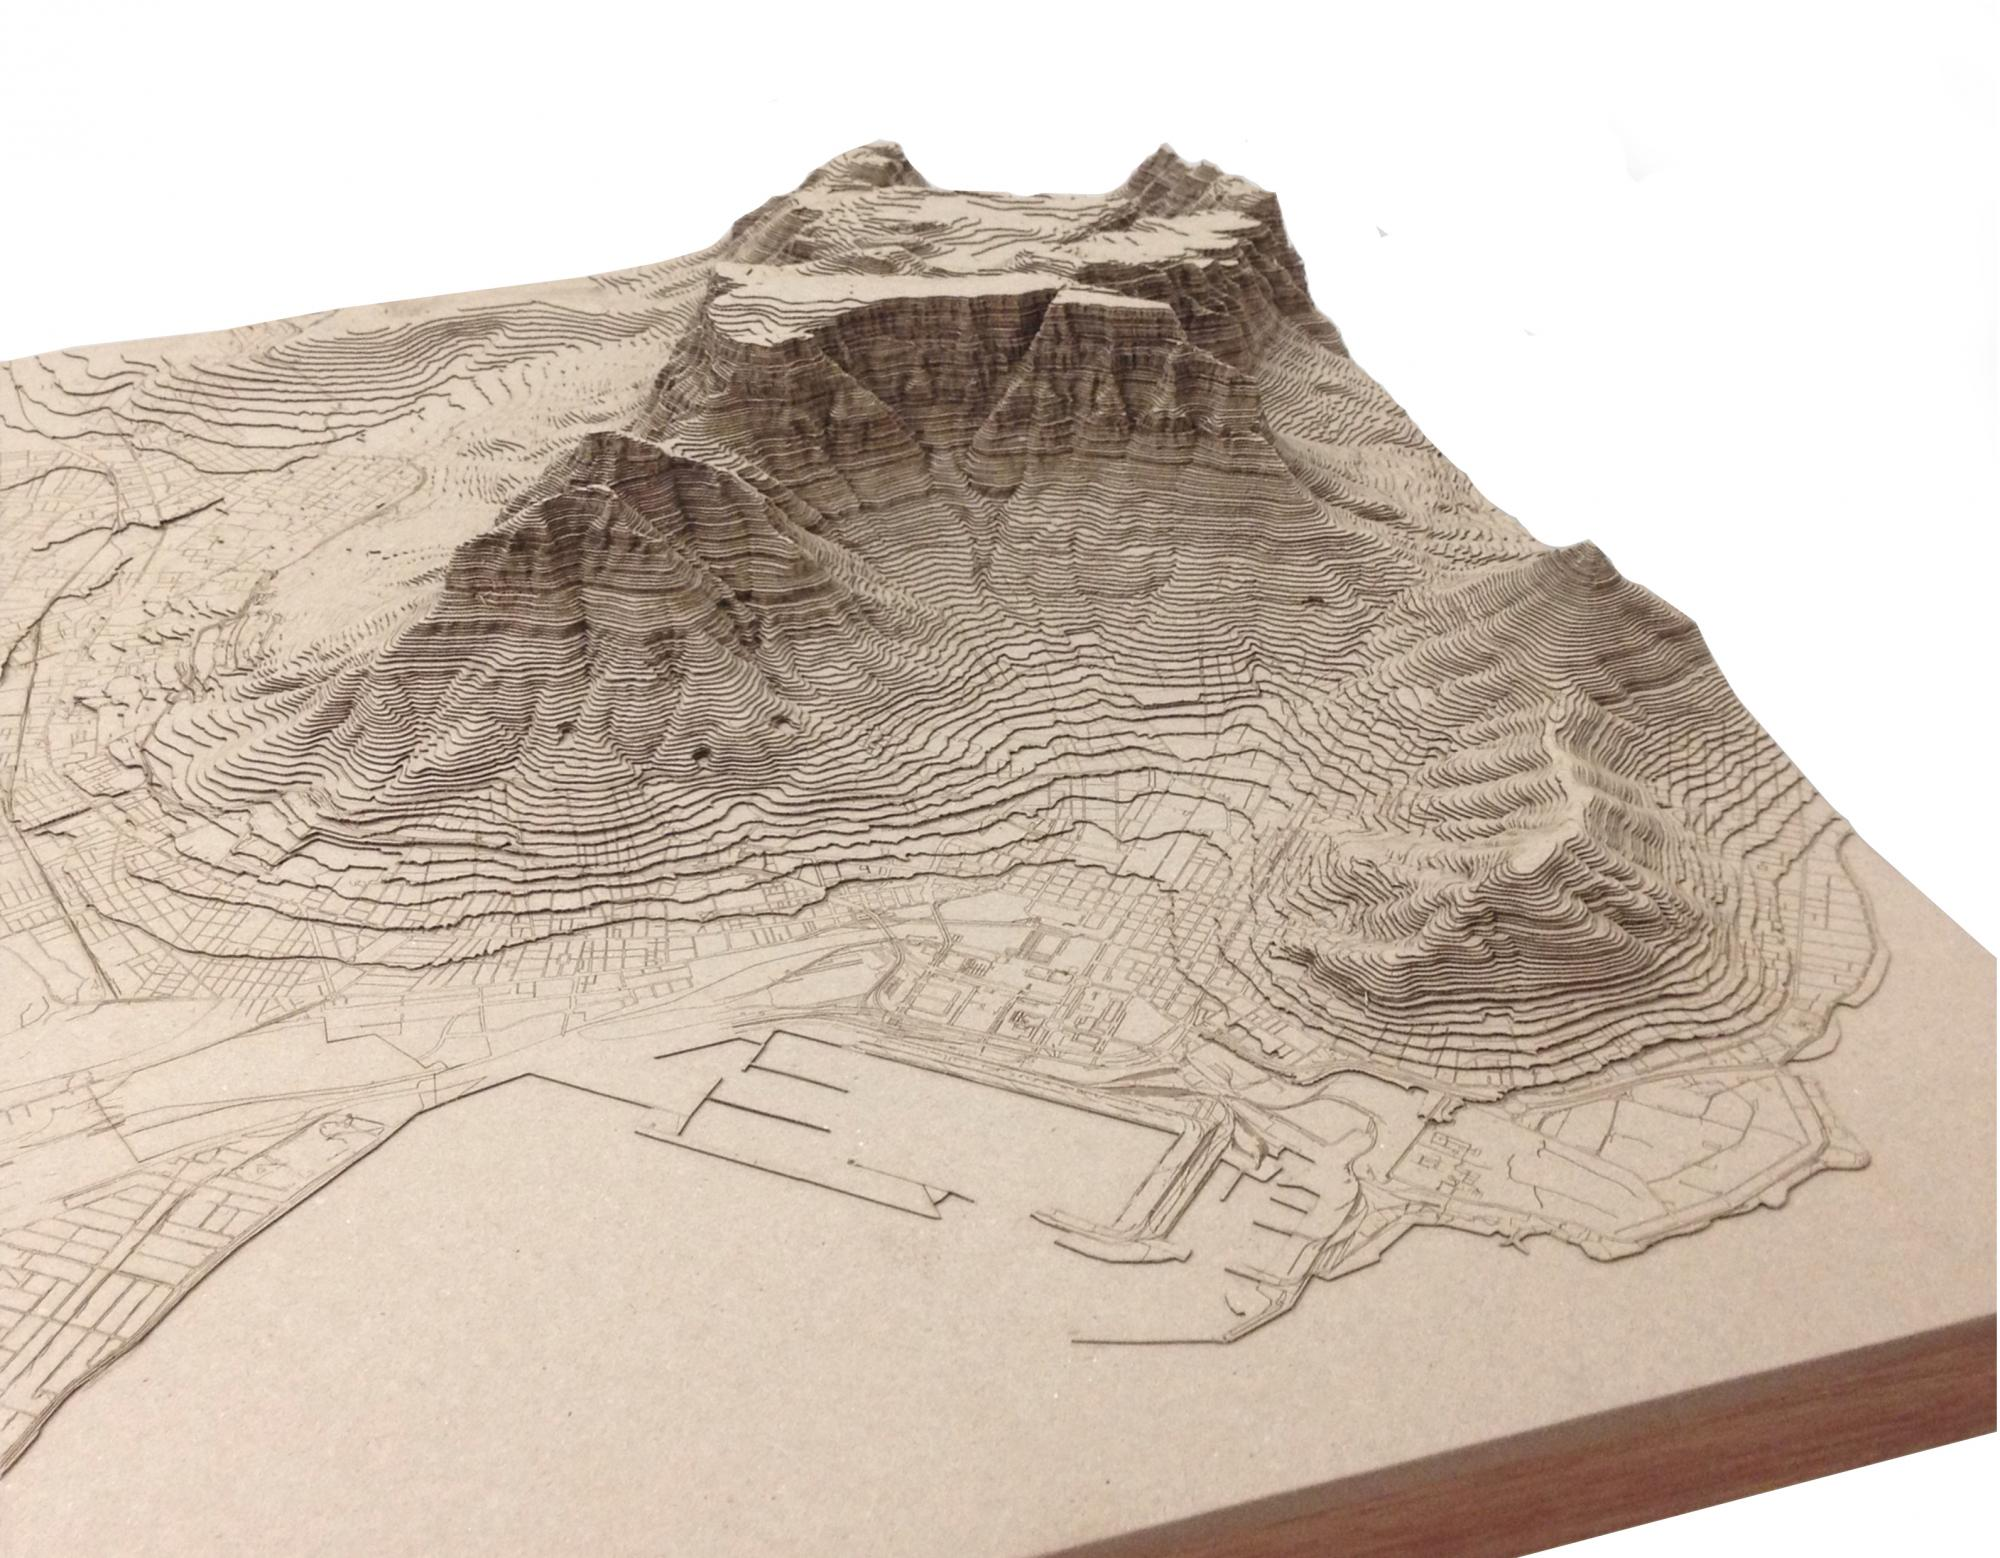 Contour Line Drawing Map : Tactile maps design indaba